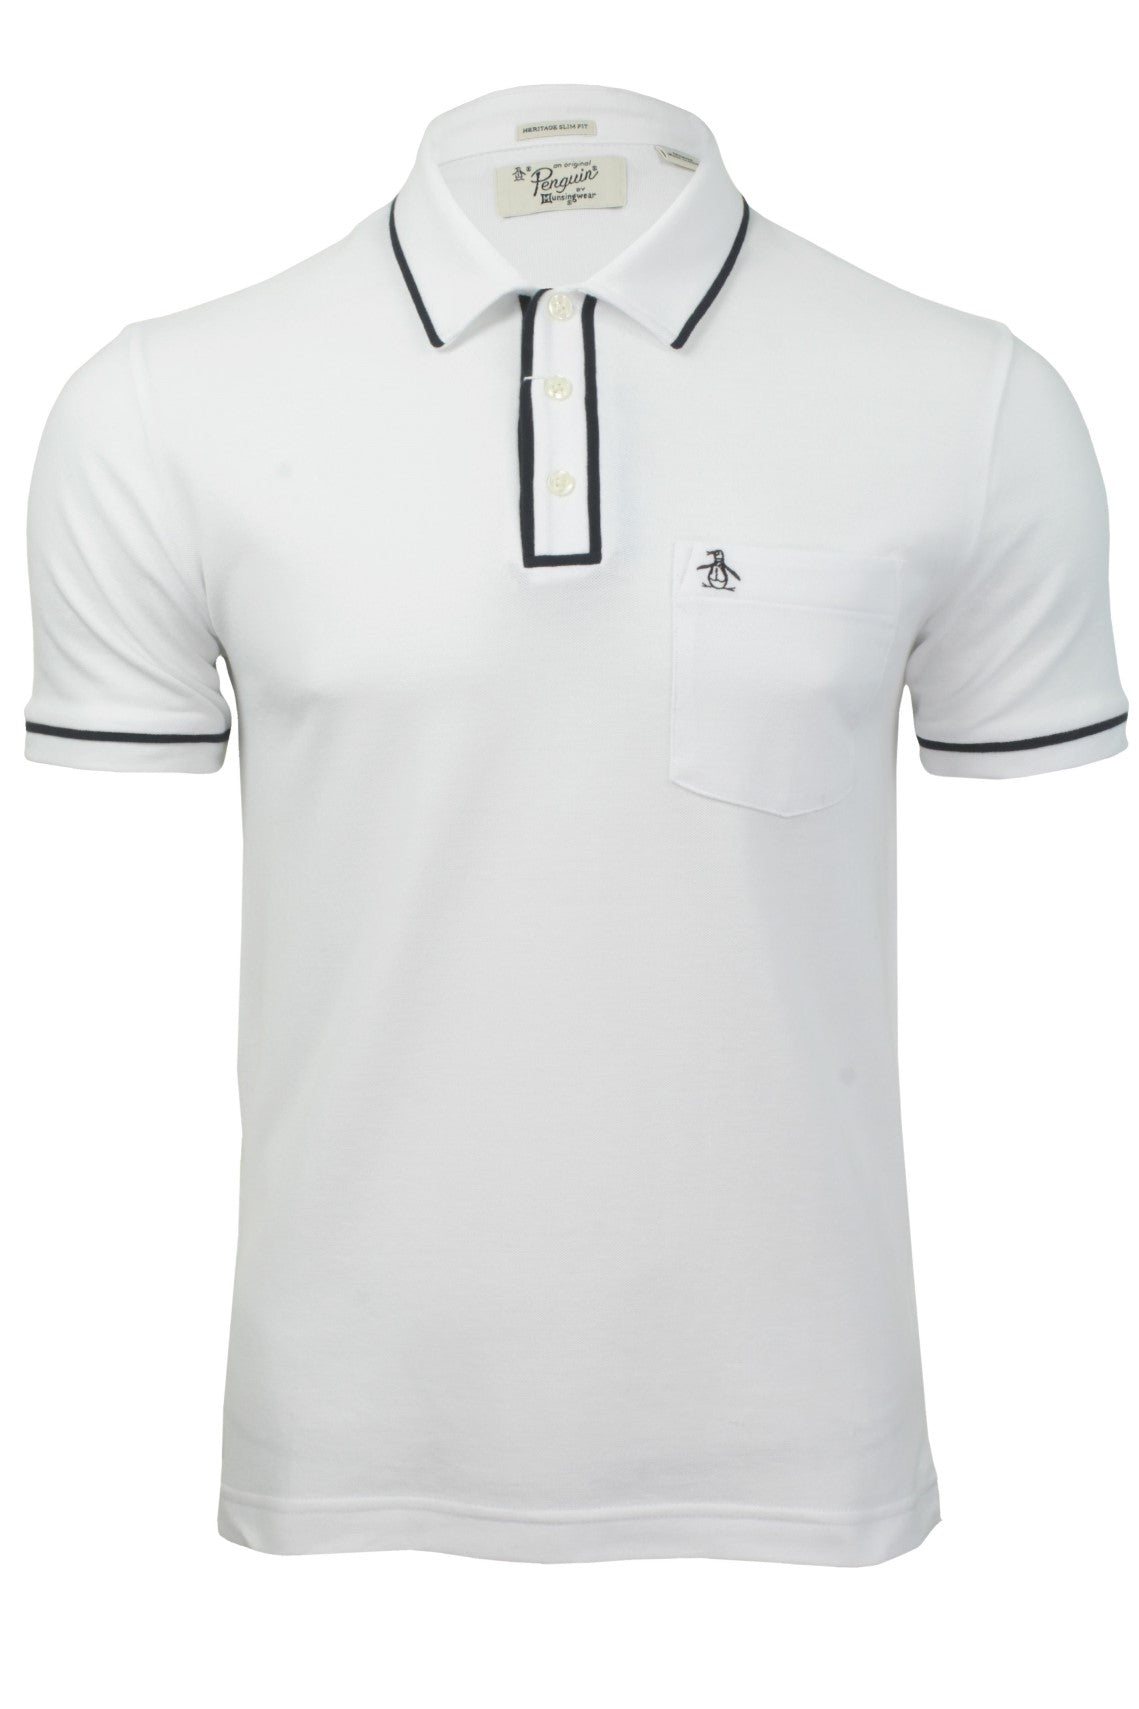 Mens Polo T-Shirt by Original Penguin 'Earl' Short Sleeved-Main Image